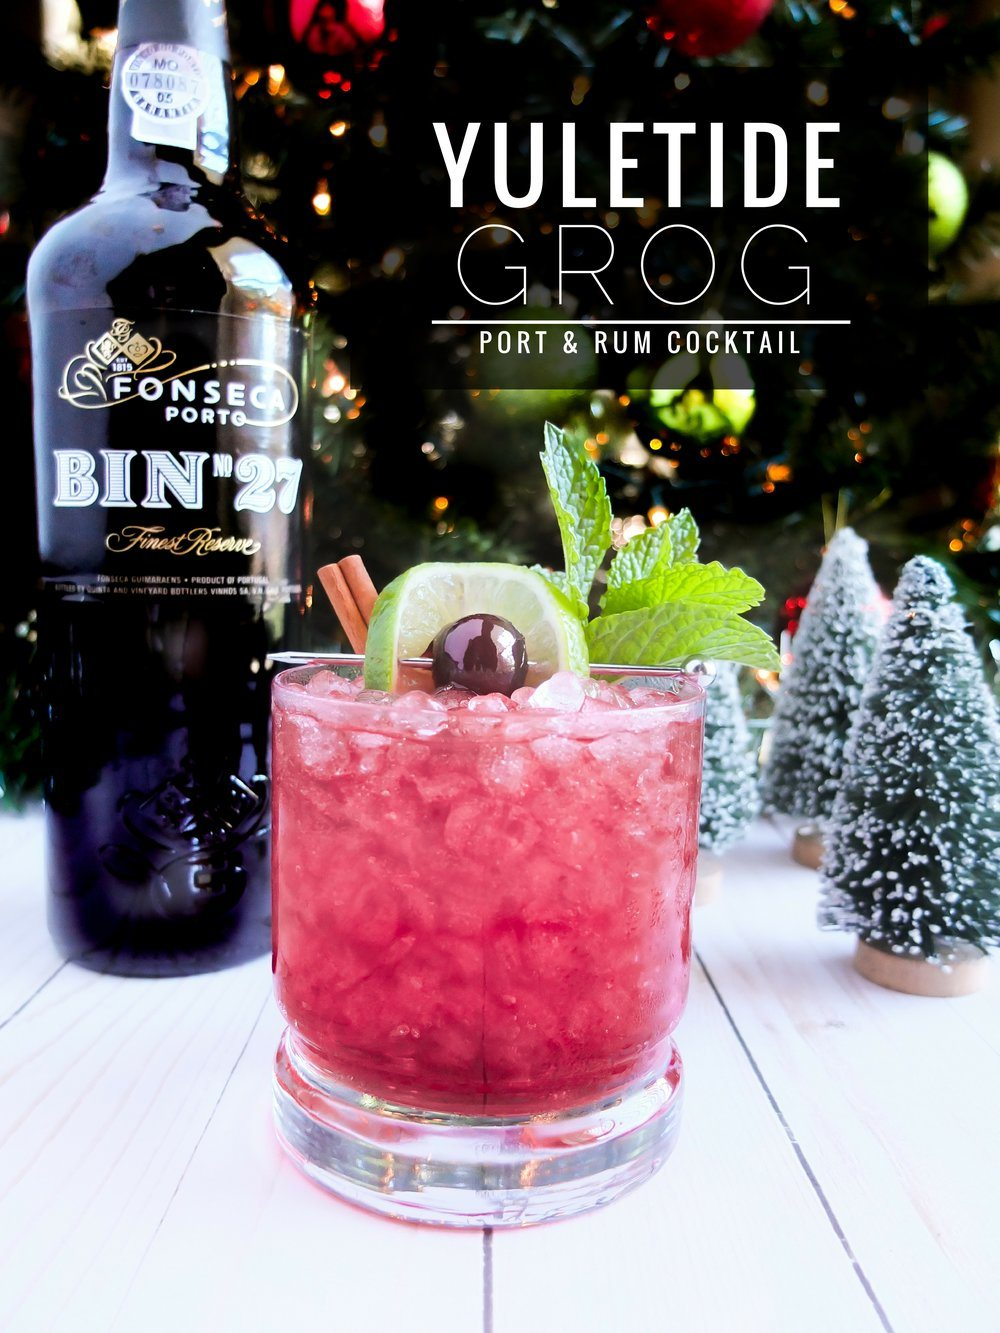 A holiday port cocktail recipe using Fonseca BIN 27 Port,dark rum, and white rum to create a delicious Christmas grog drink.Grog cocktail can be served hot or cold! #sponsored #PortCocktails @PortCocktails @FonsecaPort #Port #CocktailRecipe #Cocktail #HappyHour #DrinkRecipe #HolidayRecipe #RumCocktail #GrogCocktail